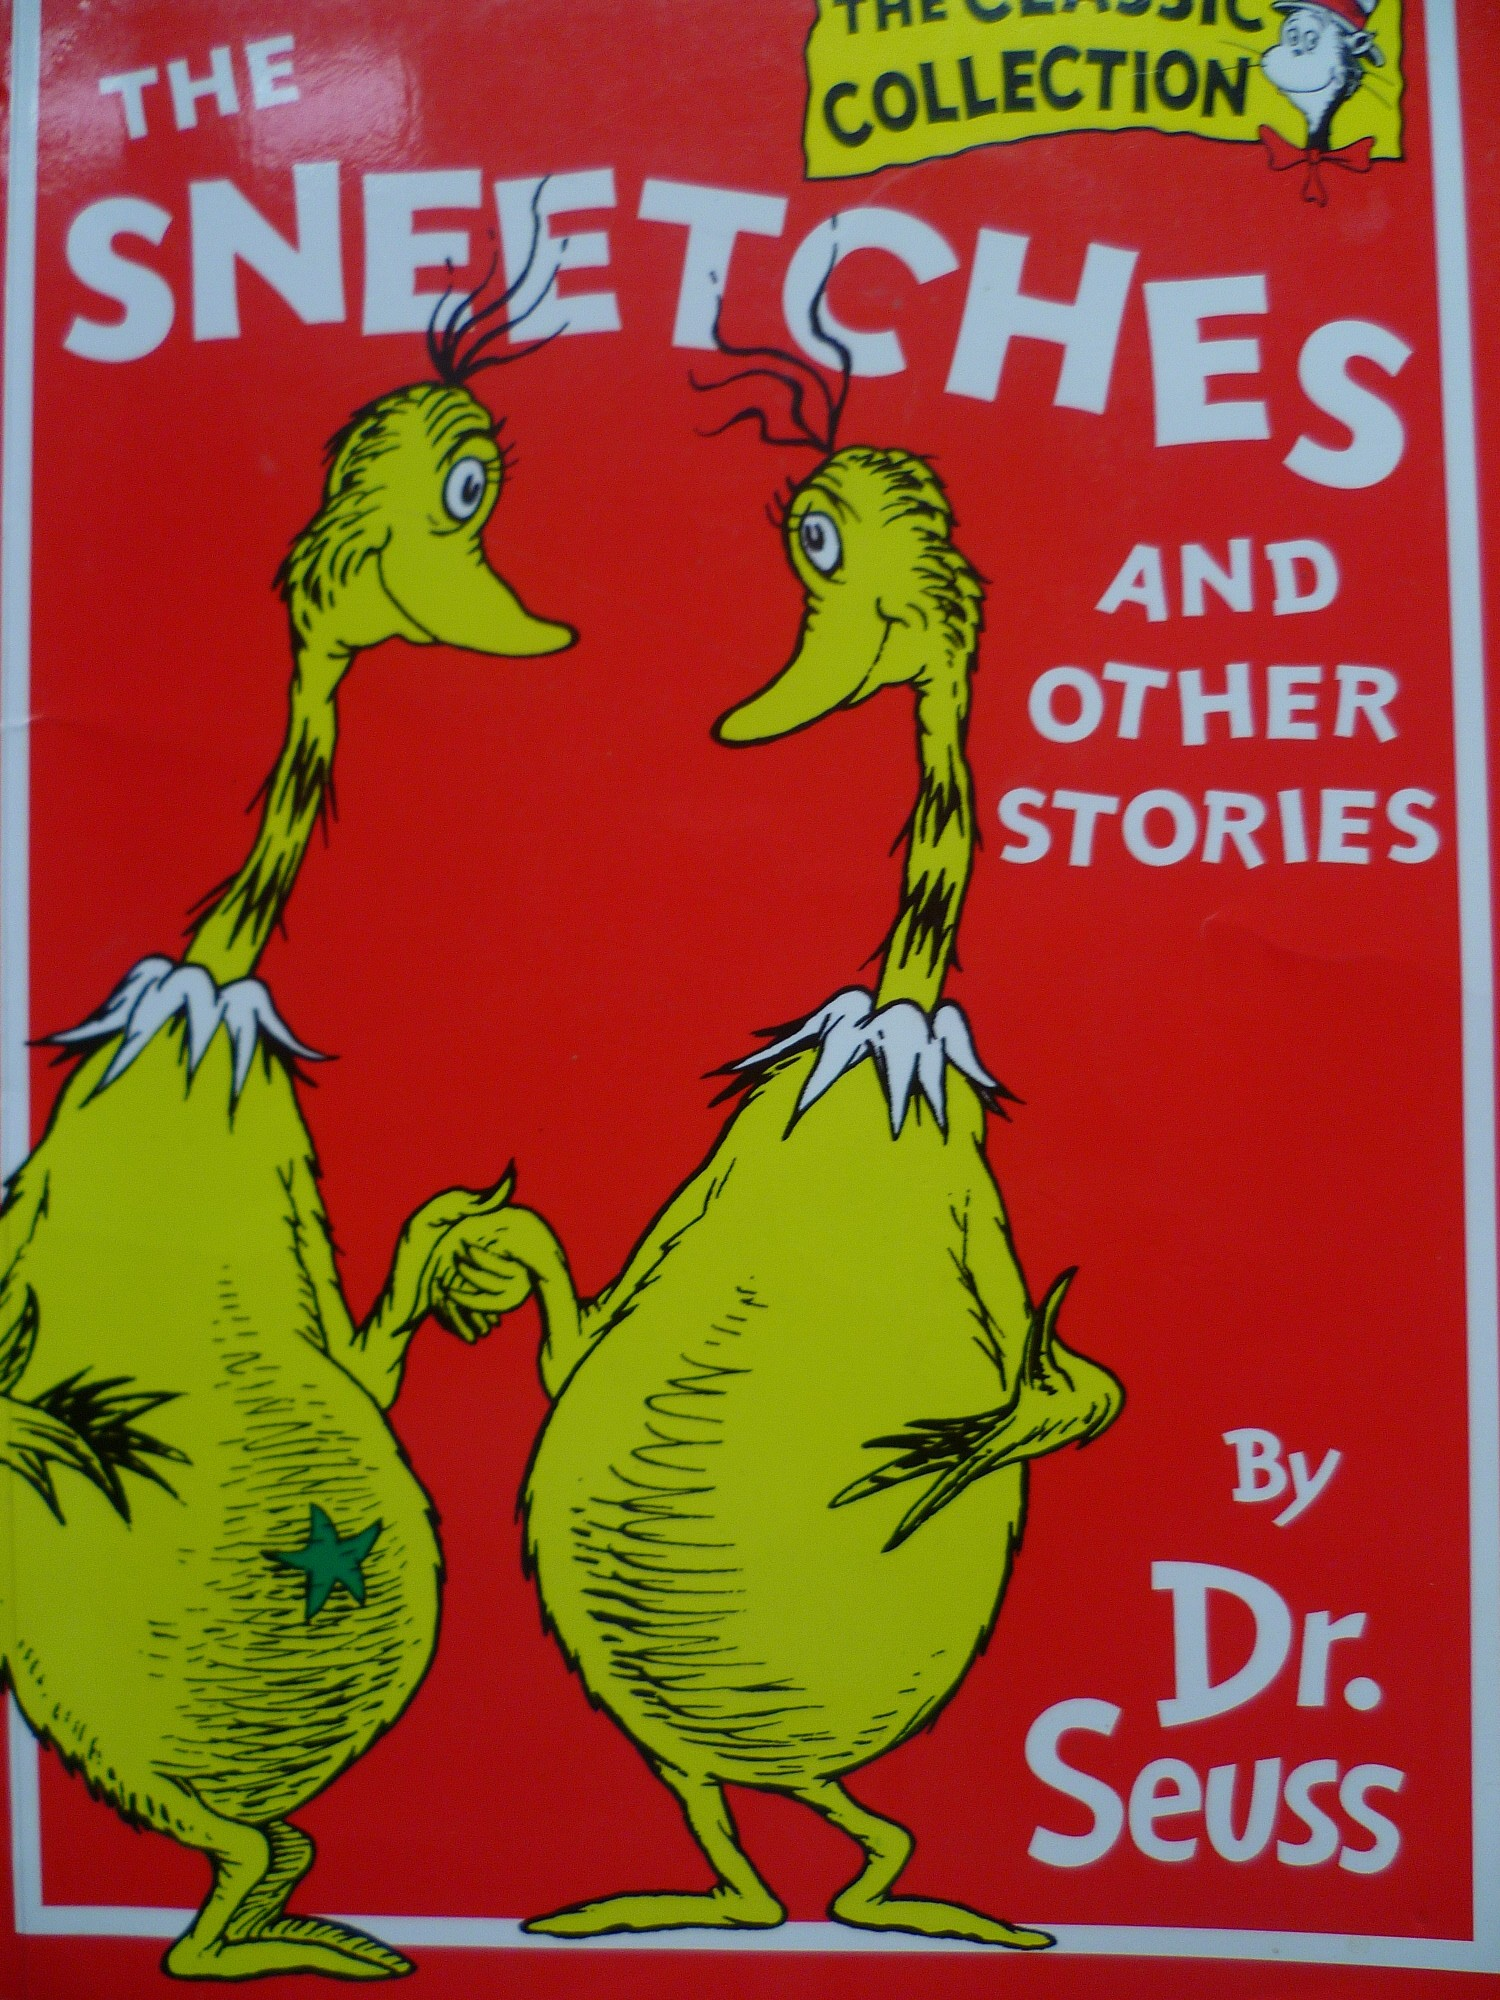 Snnoorch The Word Dr Seuss Never Thought Of